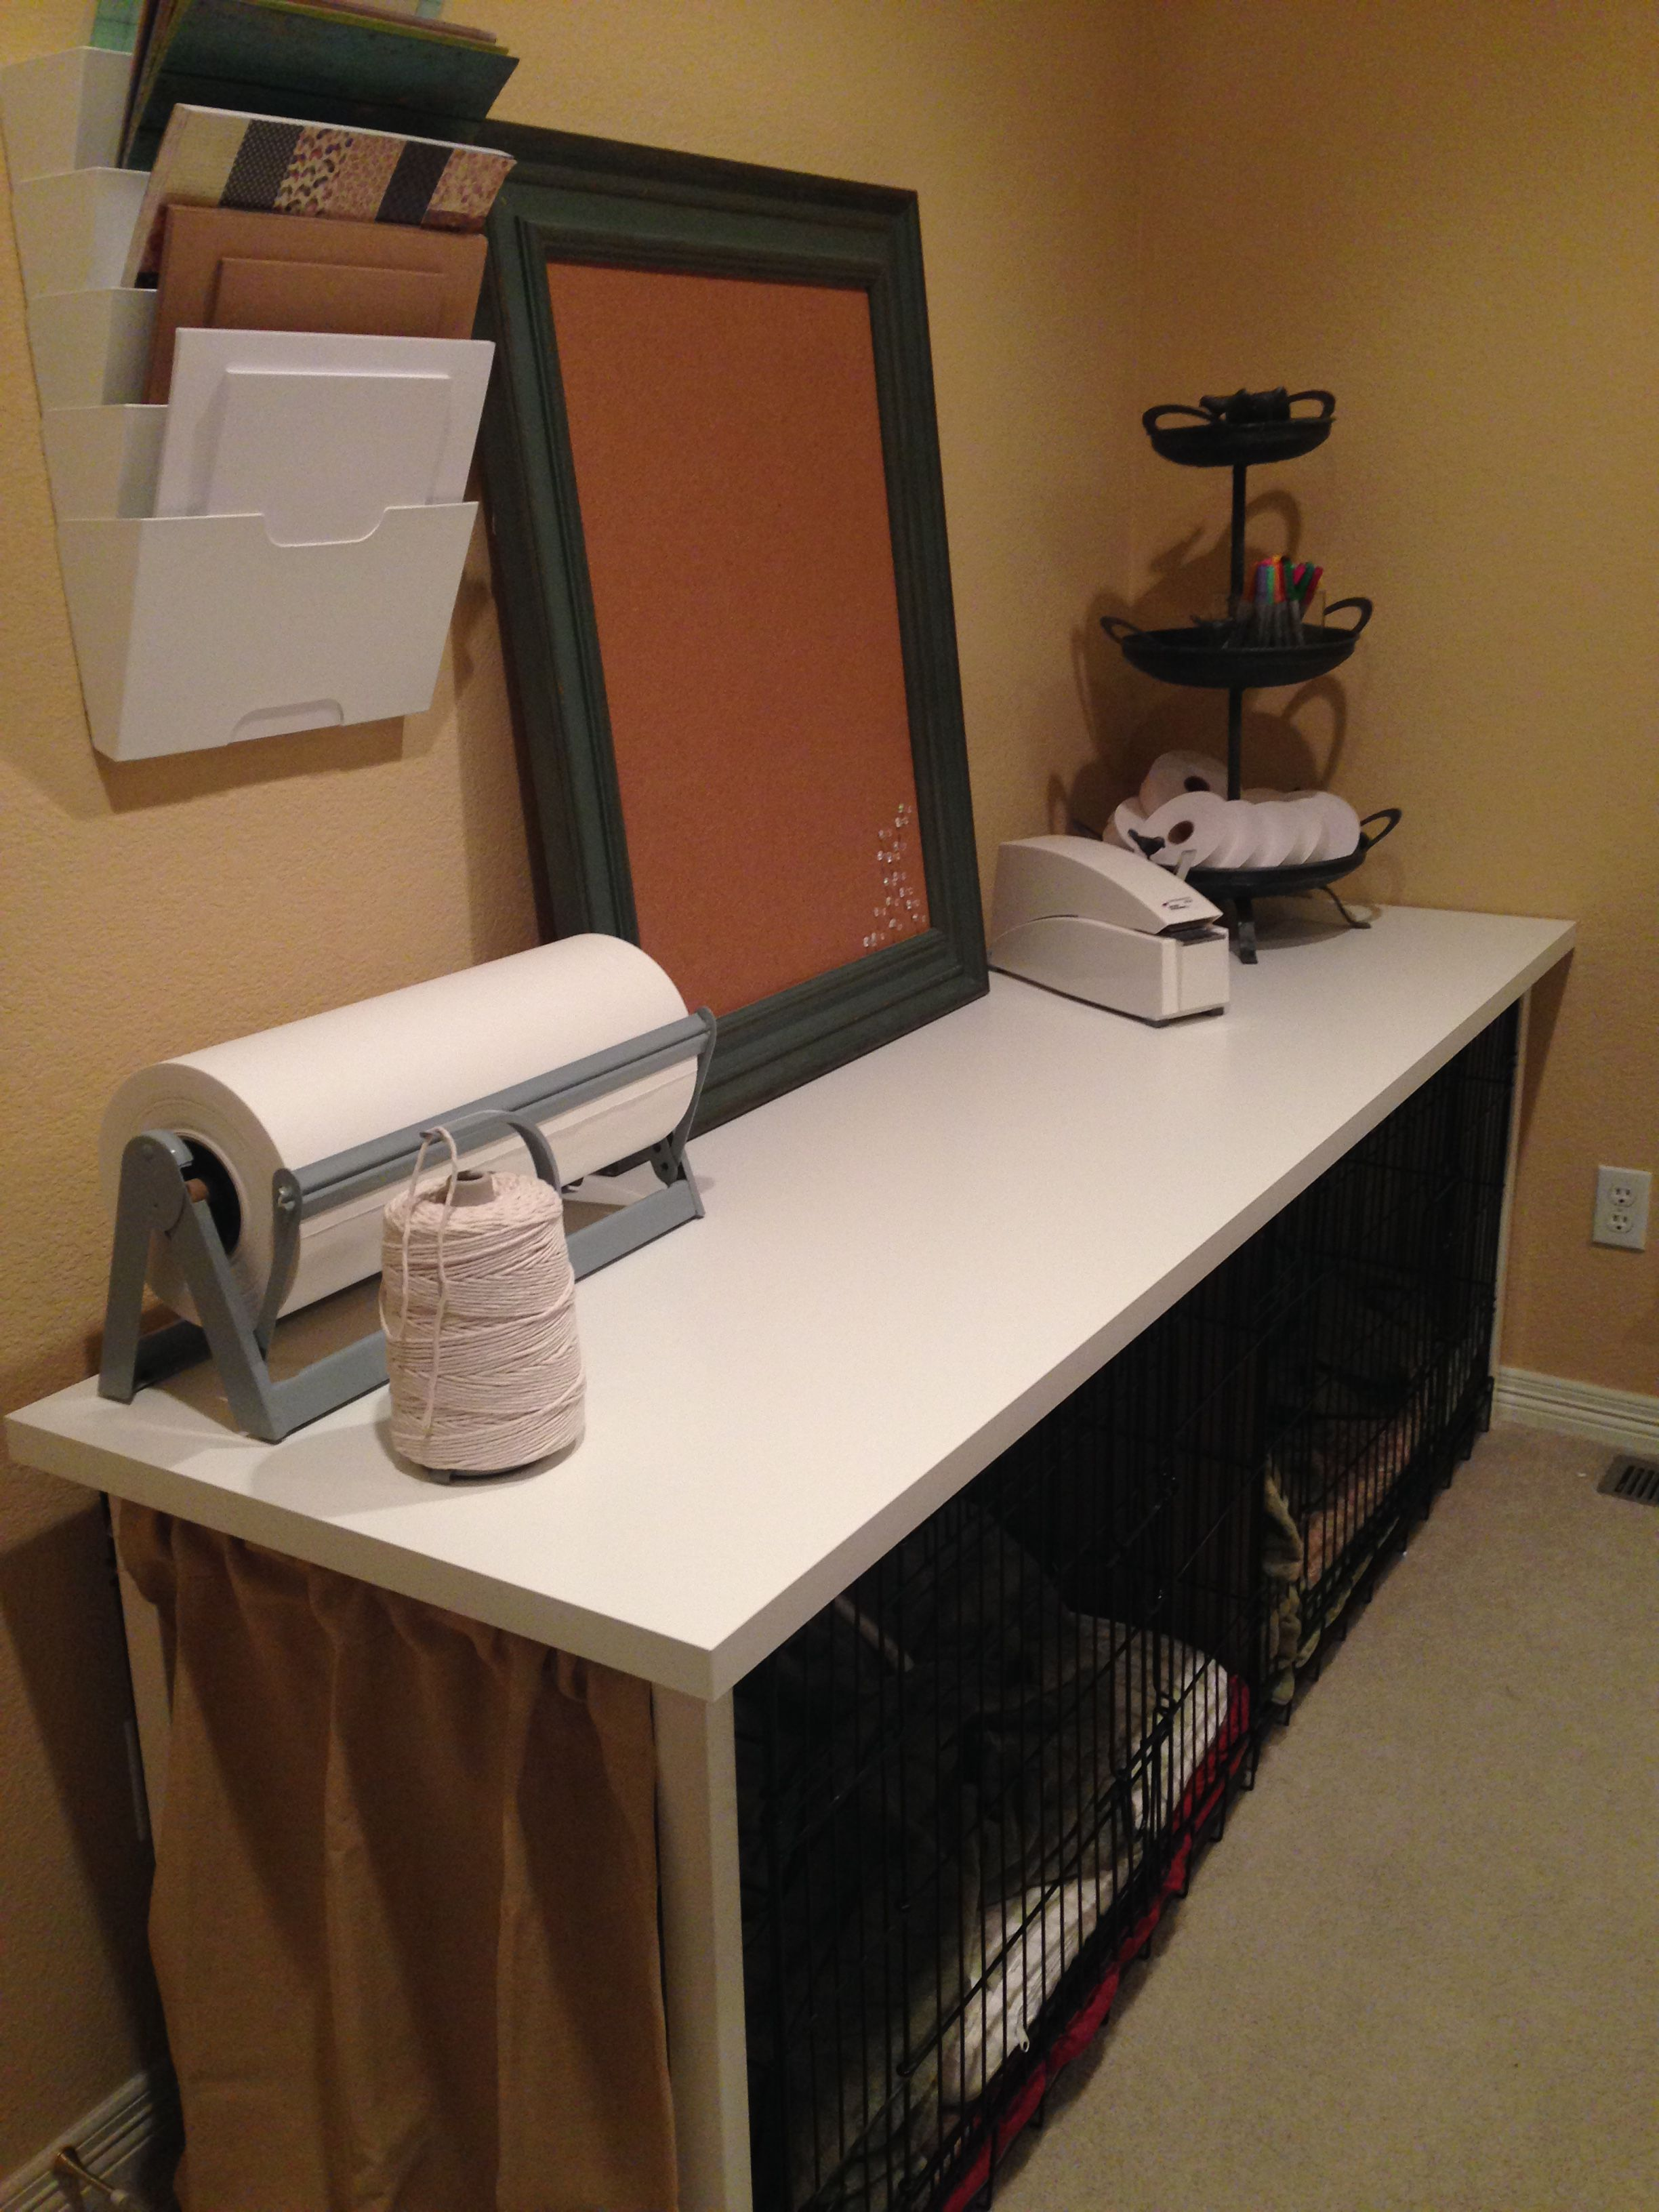 Ikea Desk Top And Legs Over 2 Dog Crates Makes A Great Crafting Table I Added Curtain On Pressure Rod At The Exposed End Linnmon 802 511 41